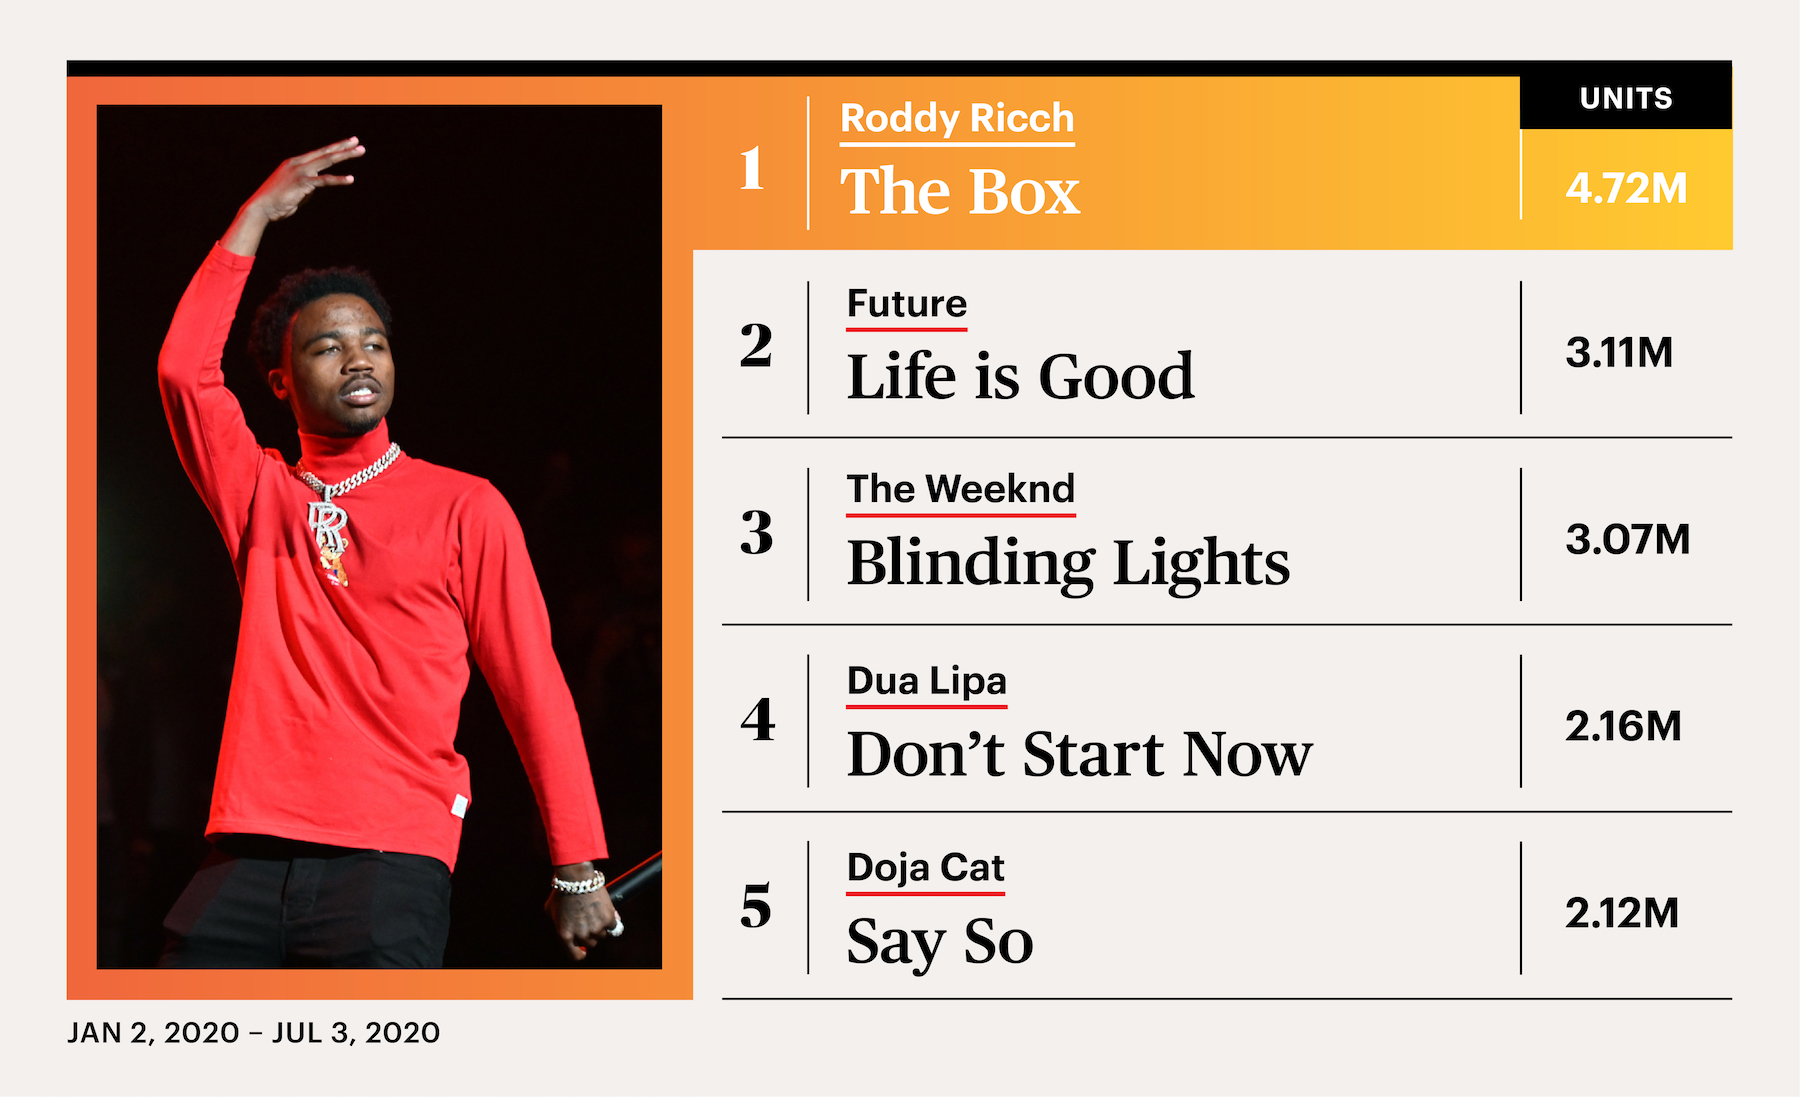 Rolling Stone, Charts, Songs